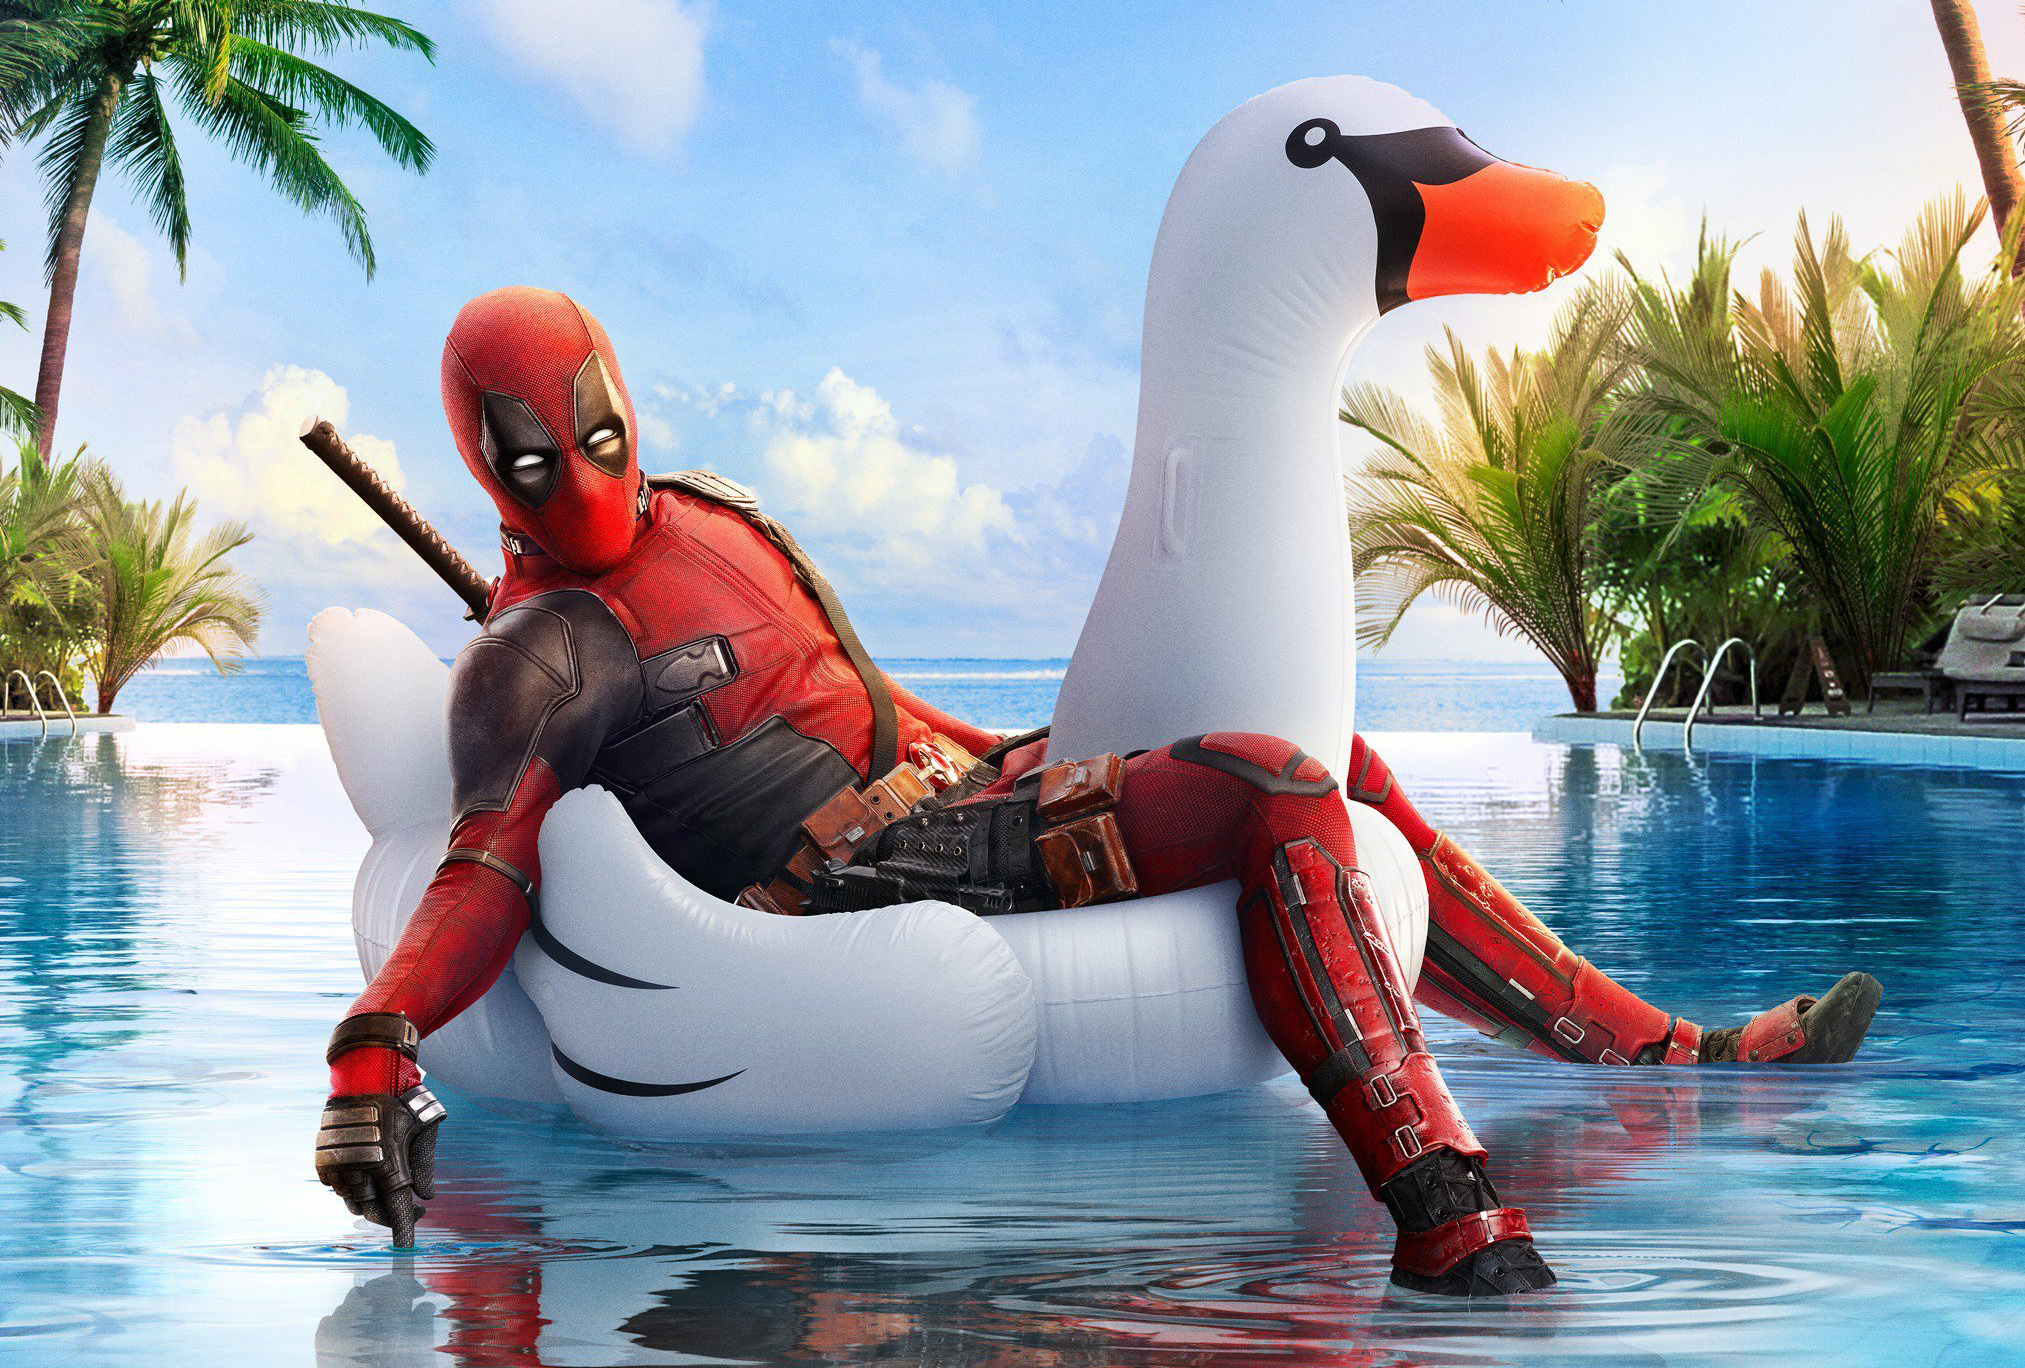 Deadpool 2 Coachella Poster - Deadpool 2 Coachella Poster - Wallpapers, 4k